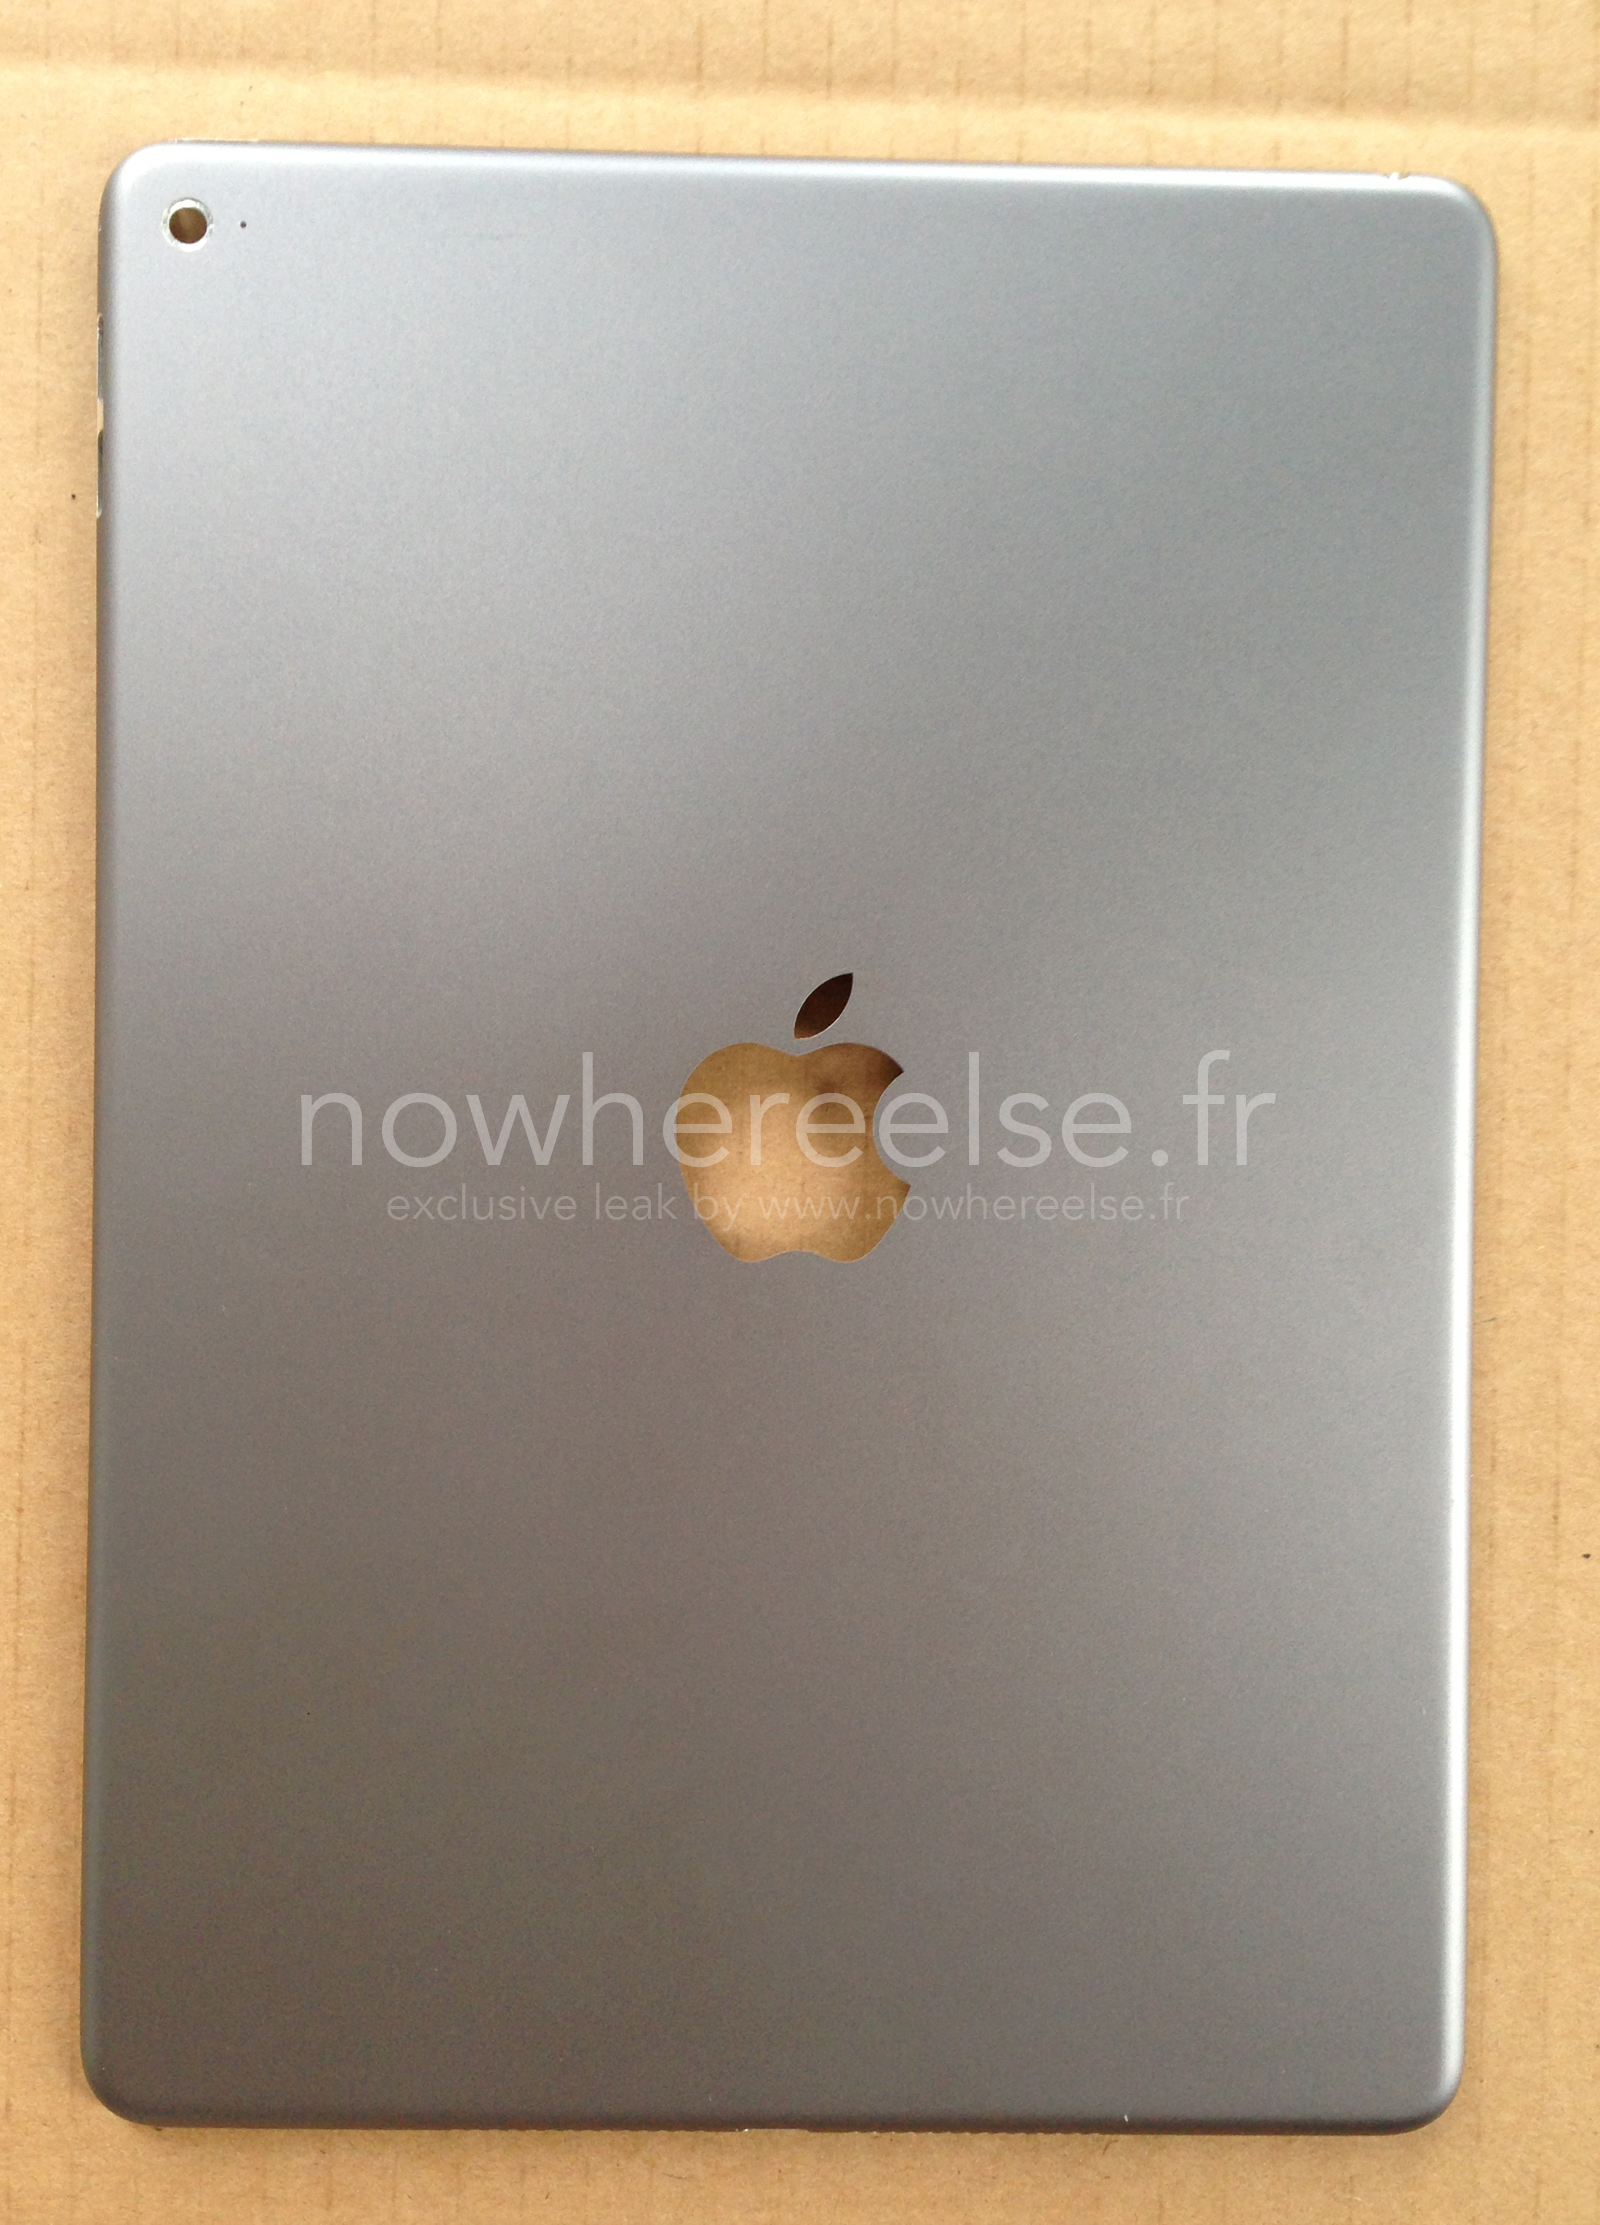 iPad Air 2 (rear panel, Nowhere Else 001)